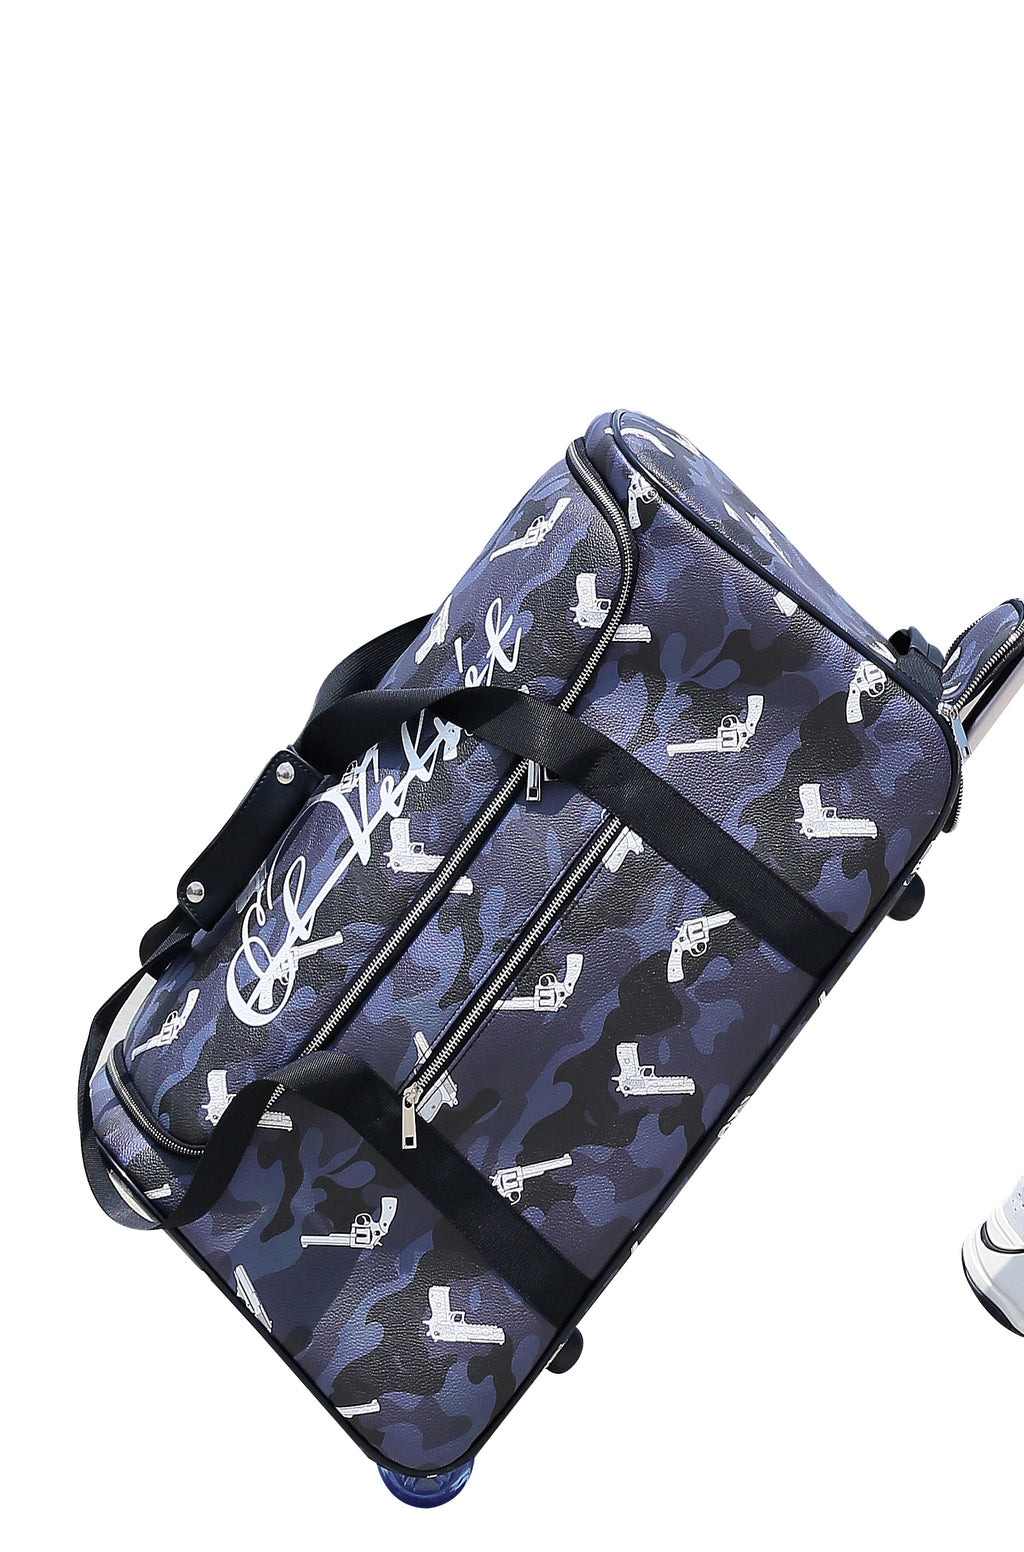 Black Strapped Camo Duffle Travel